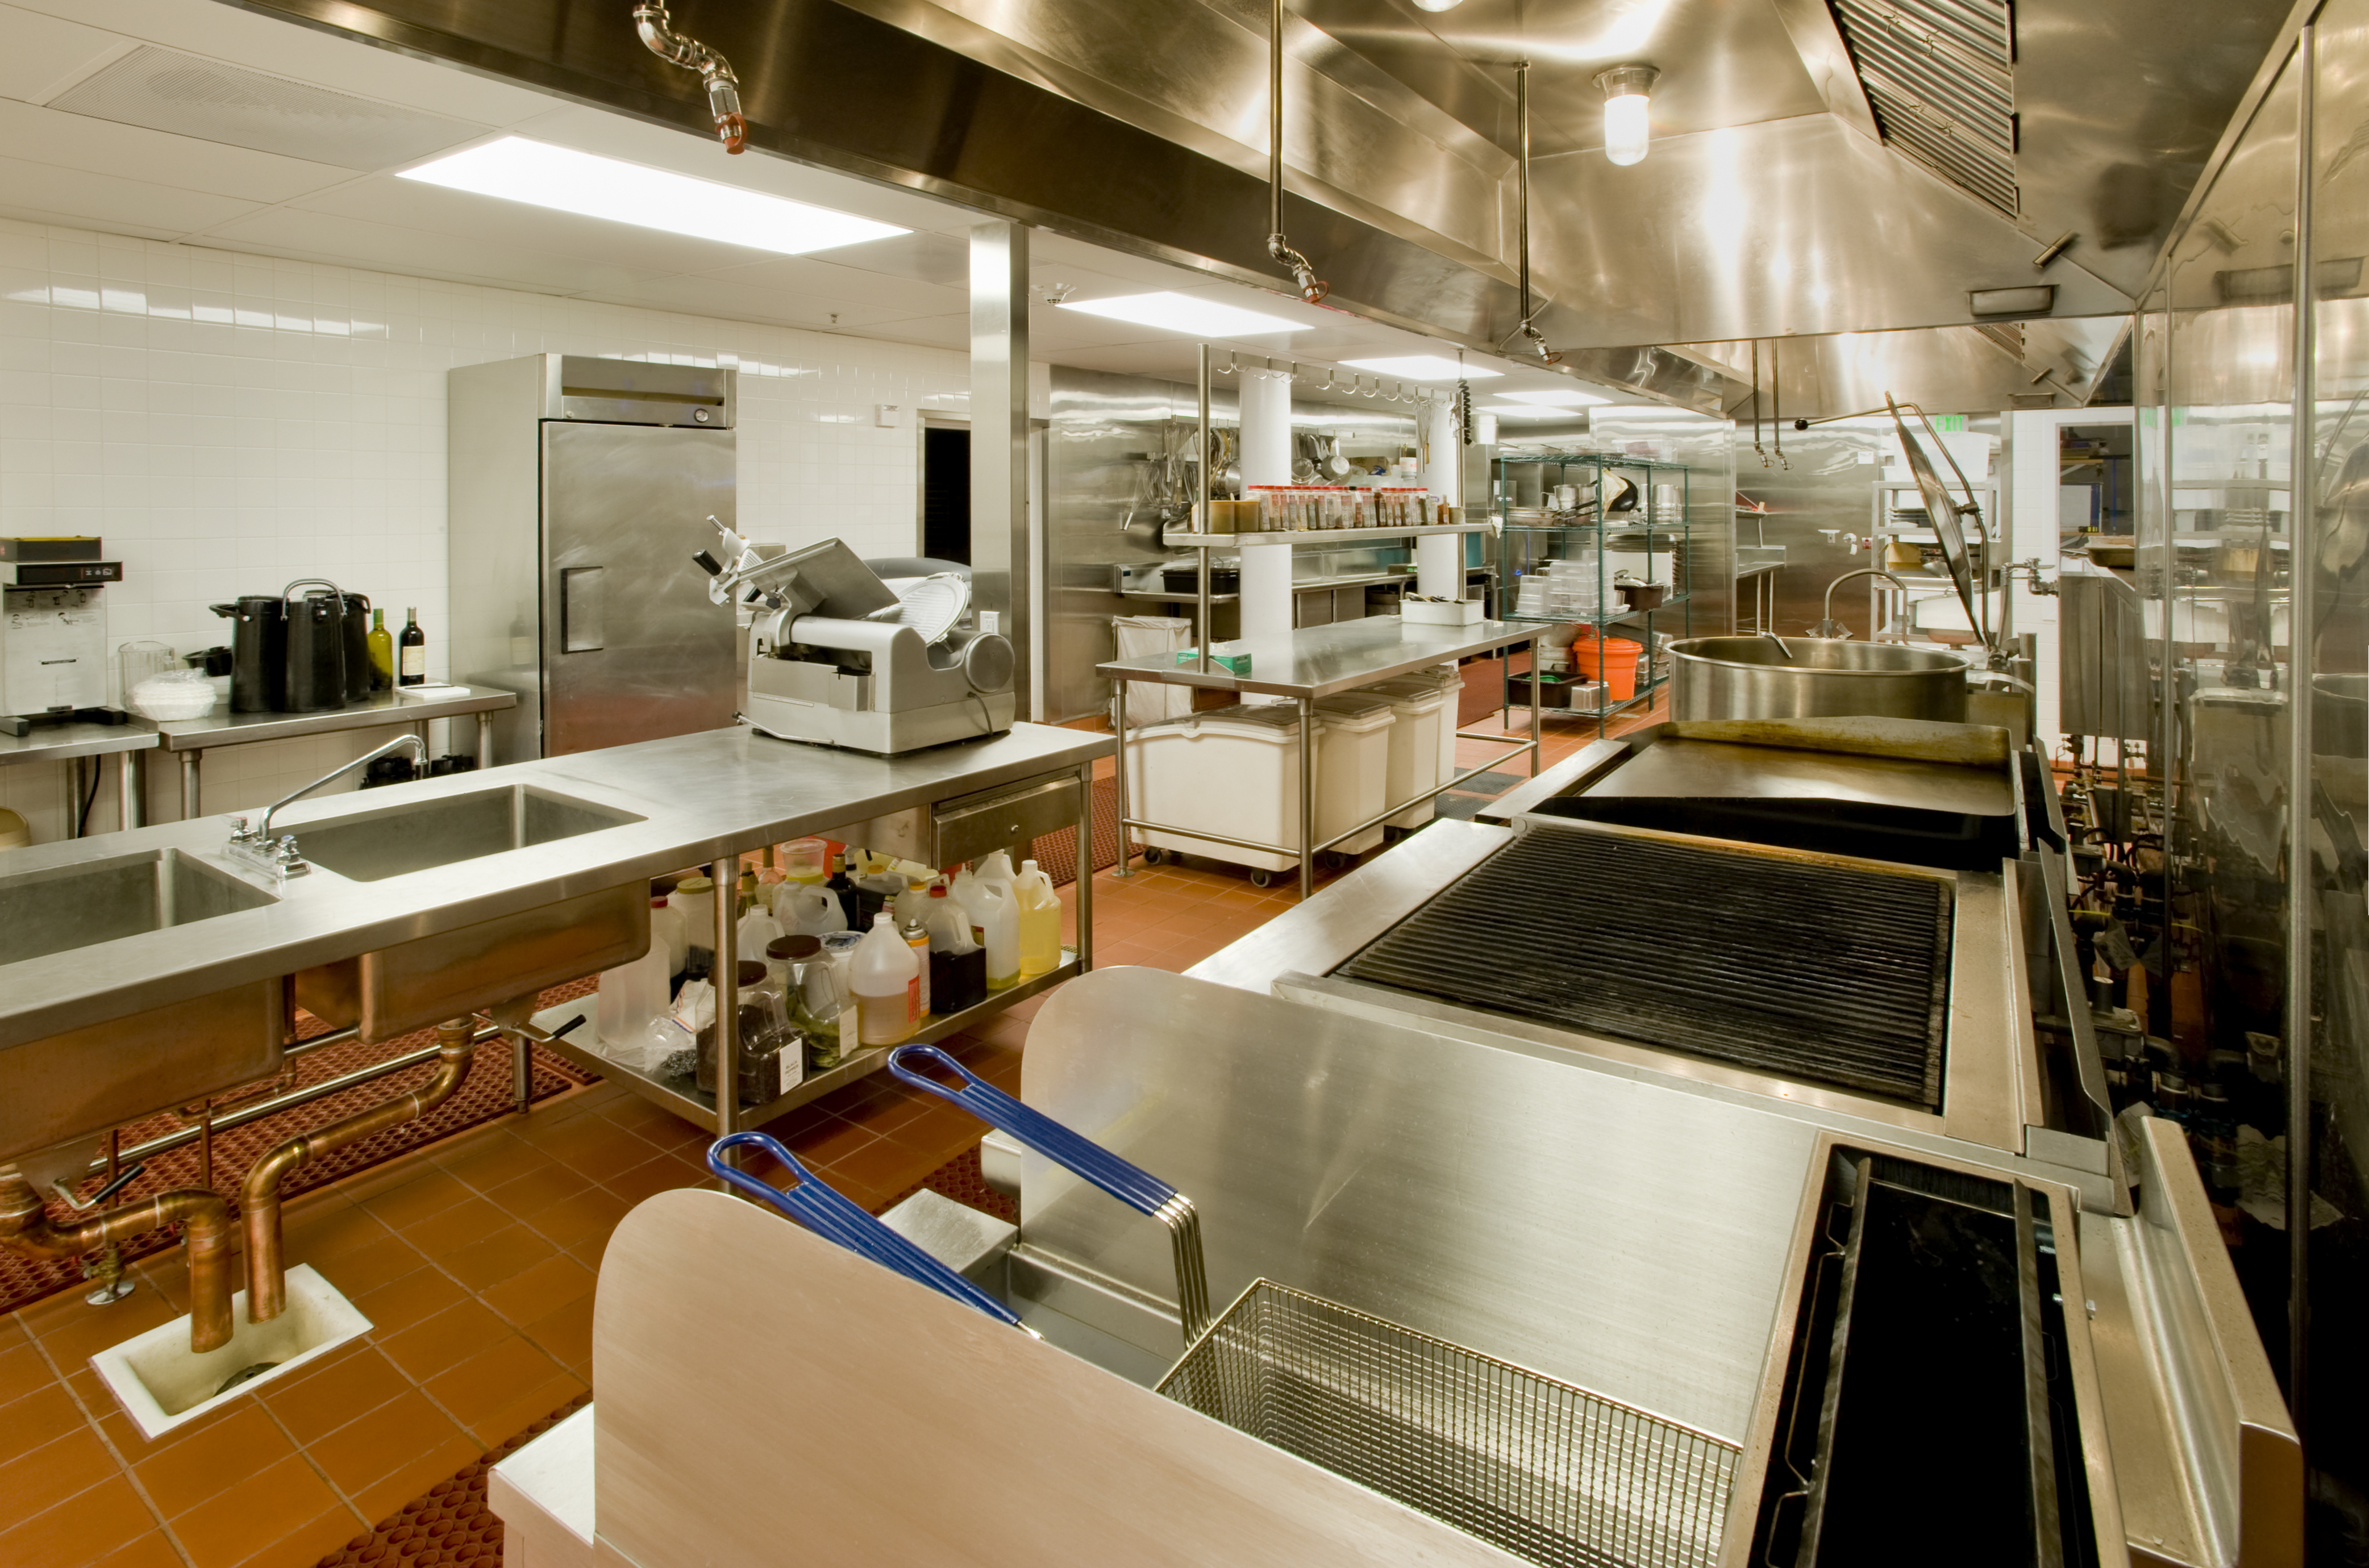 Commercial Cooking Operations - Insurance Inspectors - Insights for Your Industry